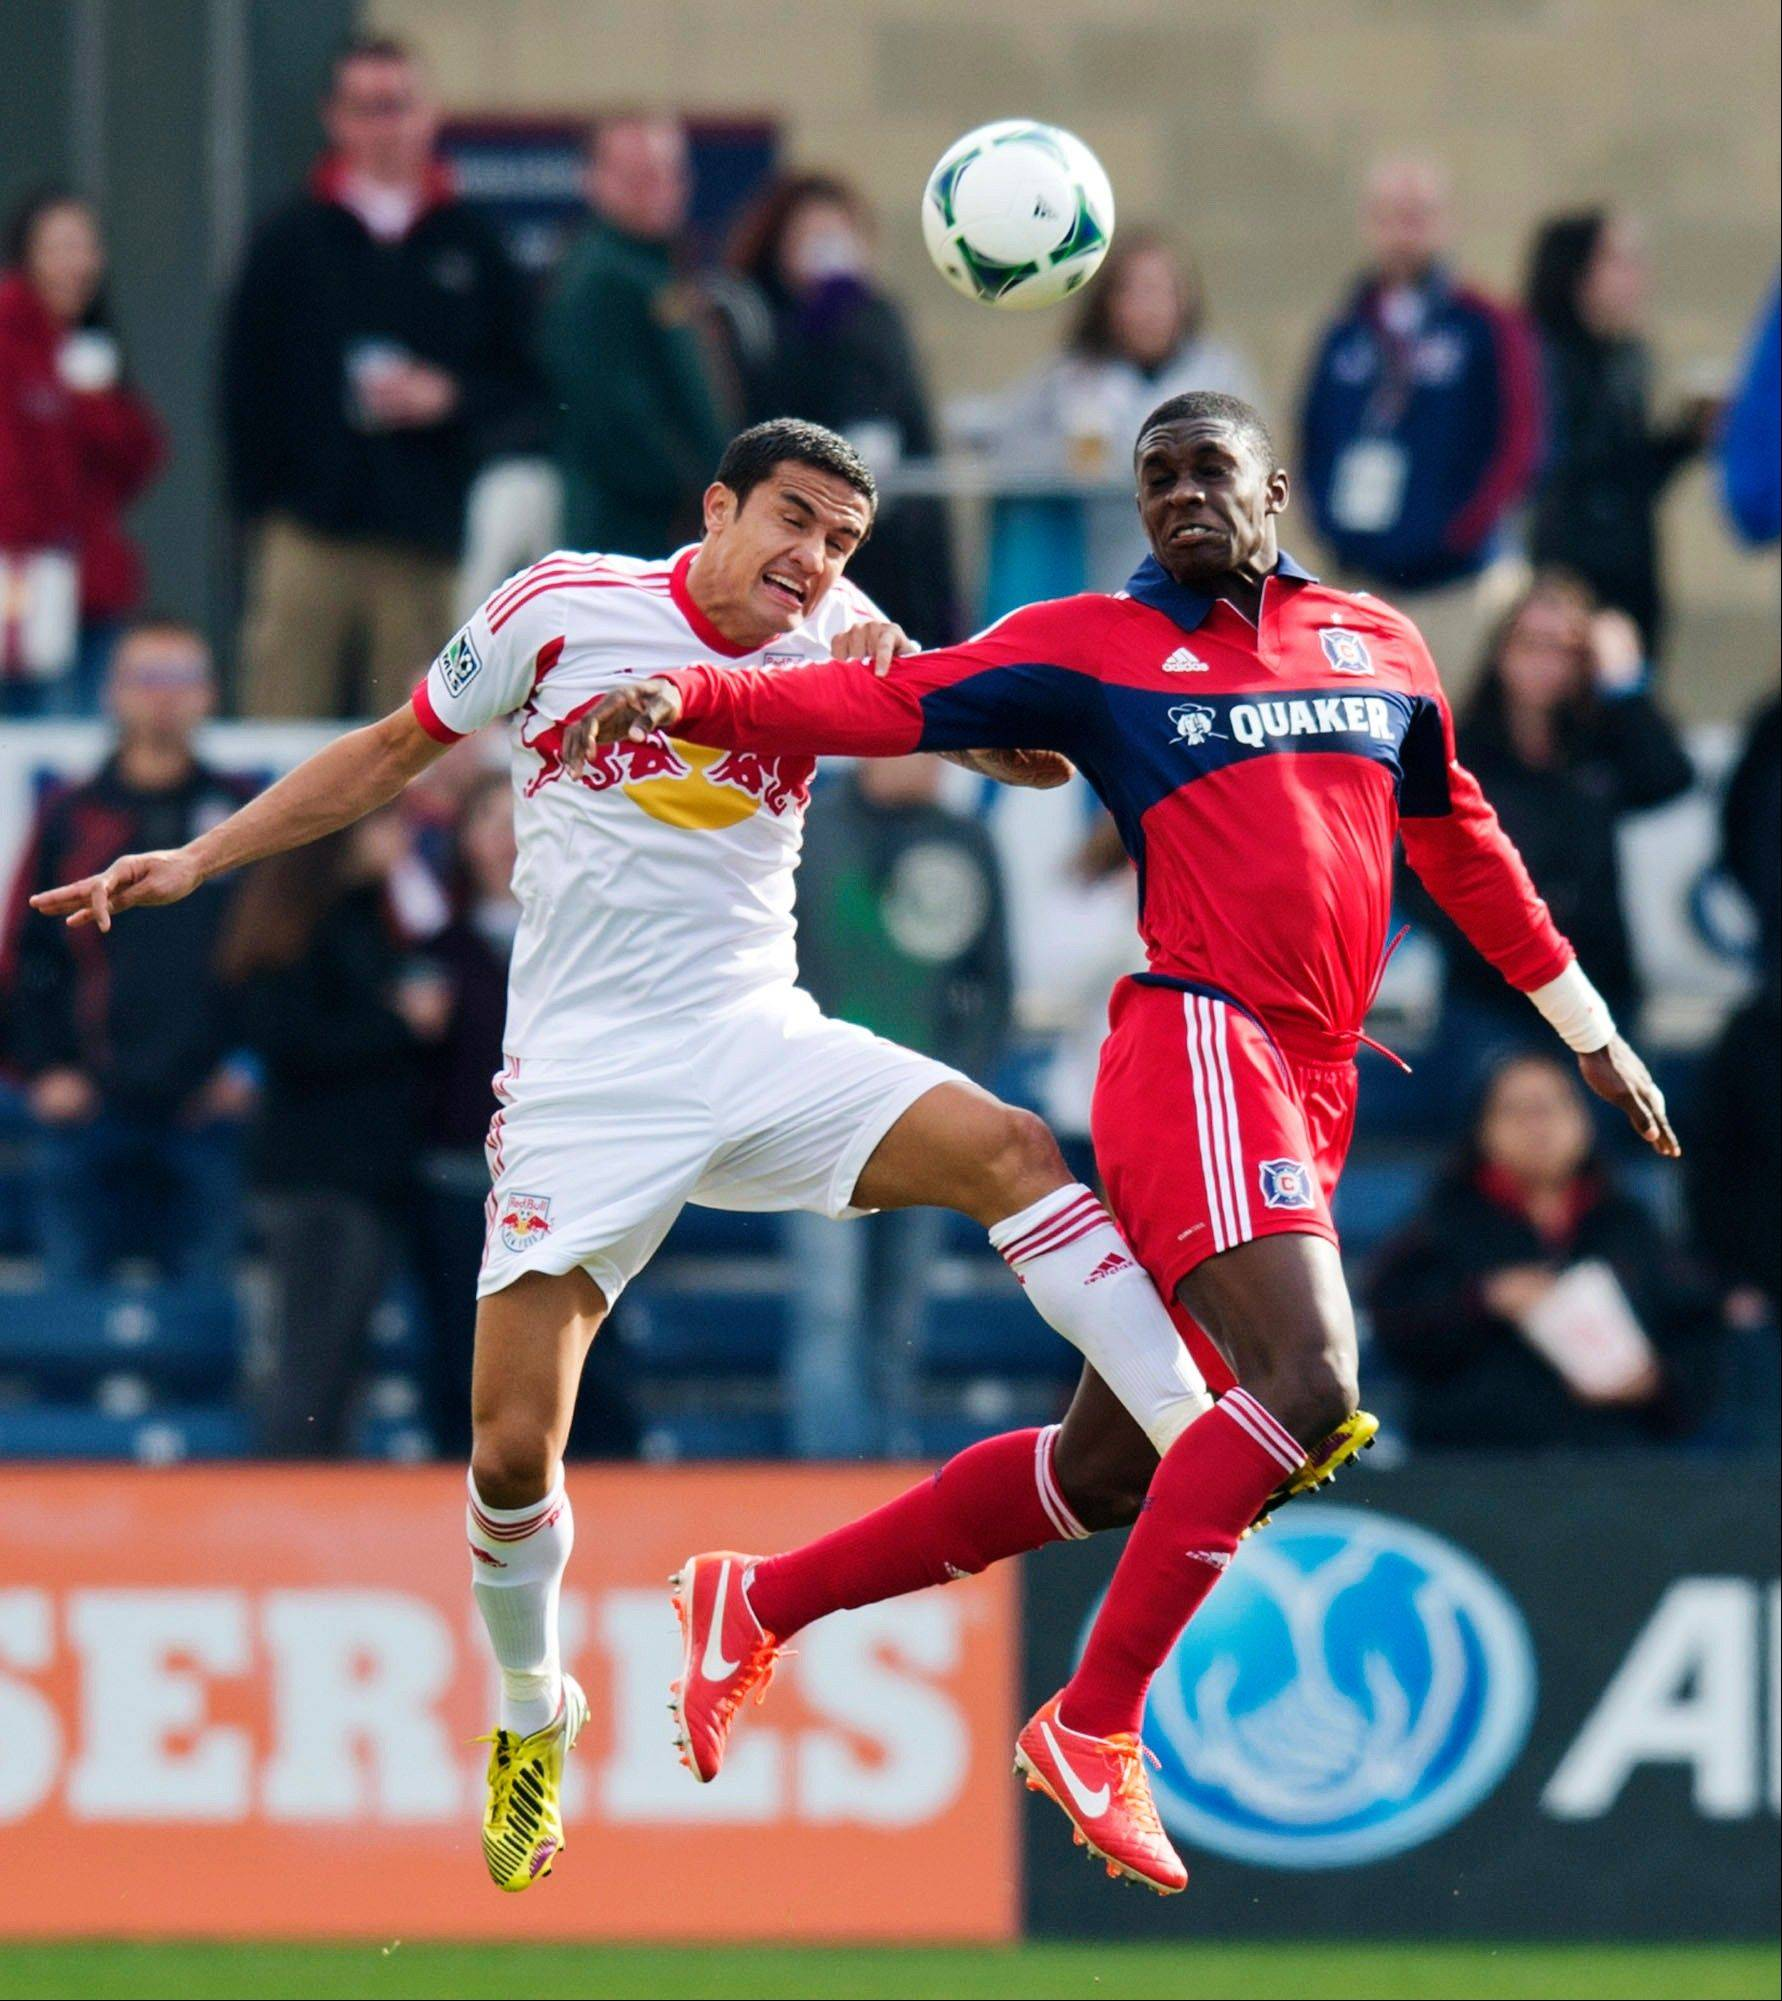 In this photo provided by the Chicago Fire, New York Red Bulls forward Tim Cahill, left, and Chicago Fire defender Jalil Anibaba go for the ball during the first half of an MLS soccer match, Sunday, April 7, 2013, in Bridgeview, Ill. The Fire won 3-1.